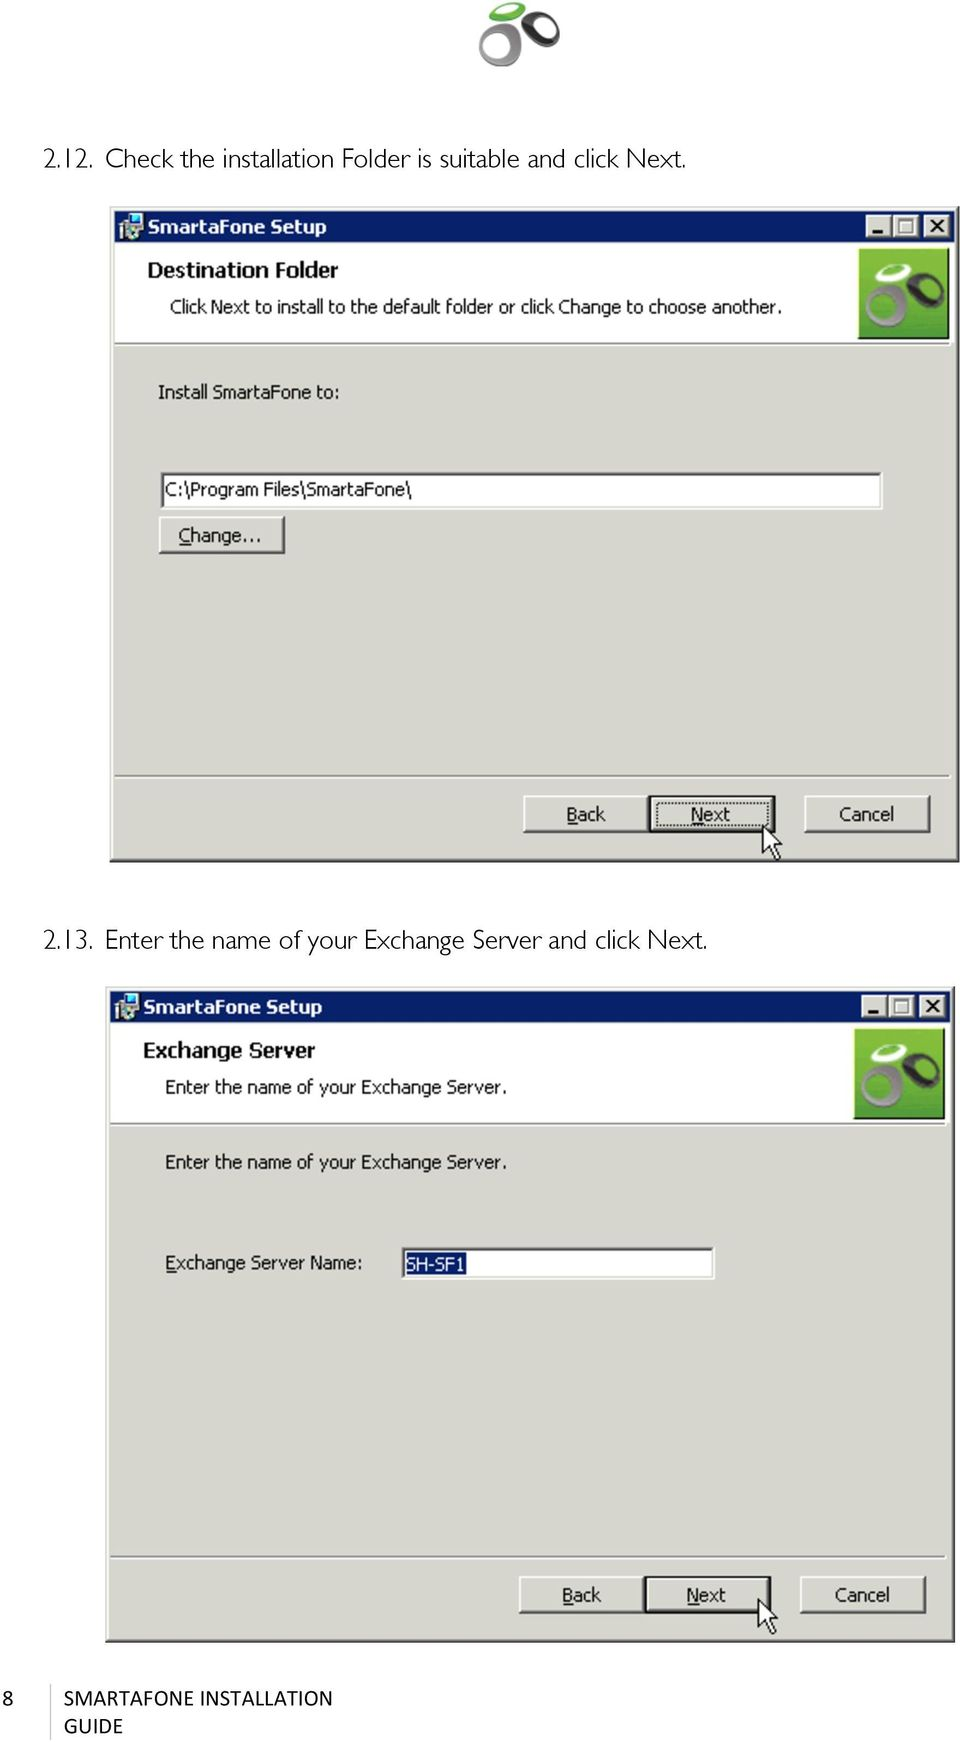 Enter the name of your Exchange Server